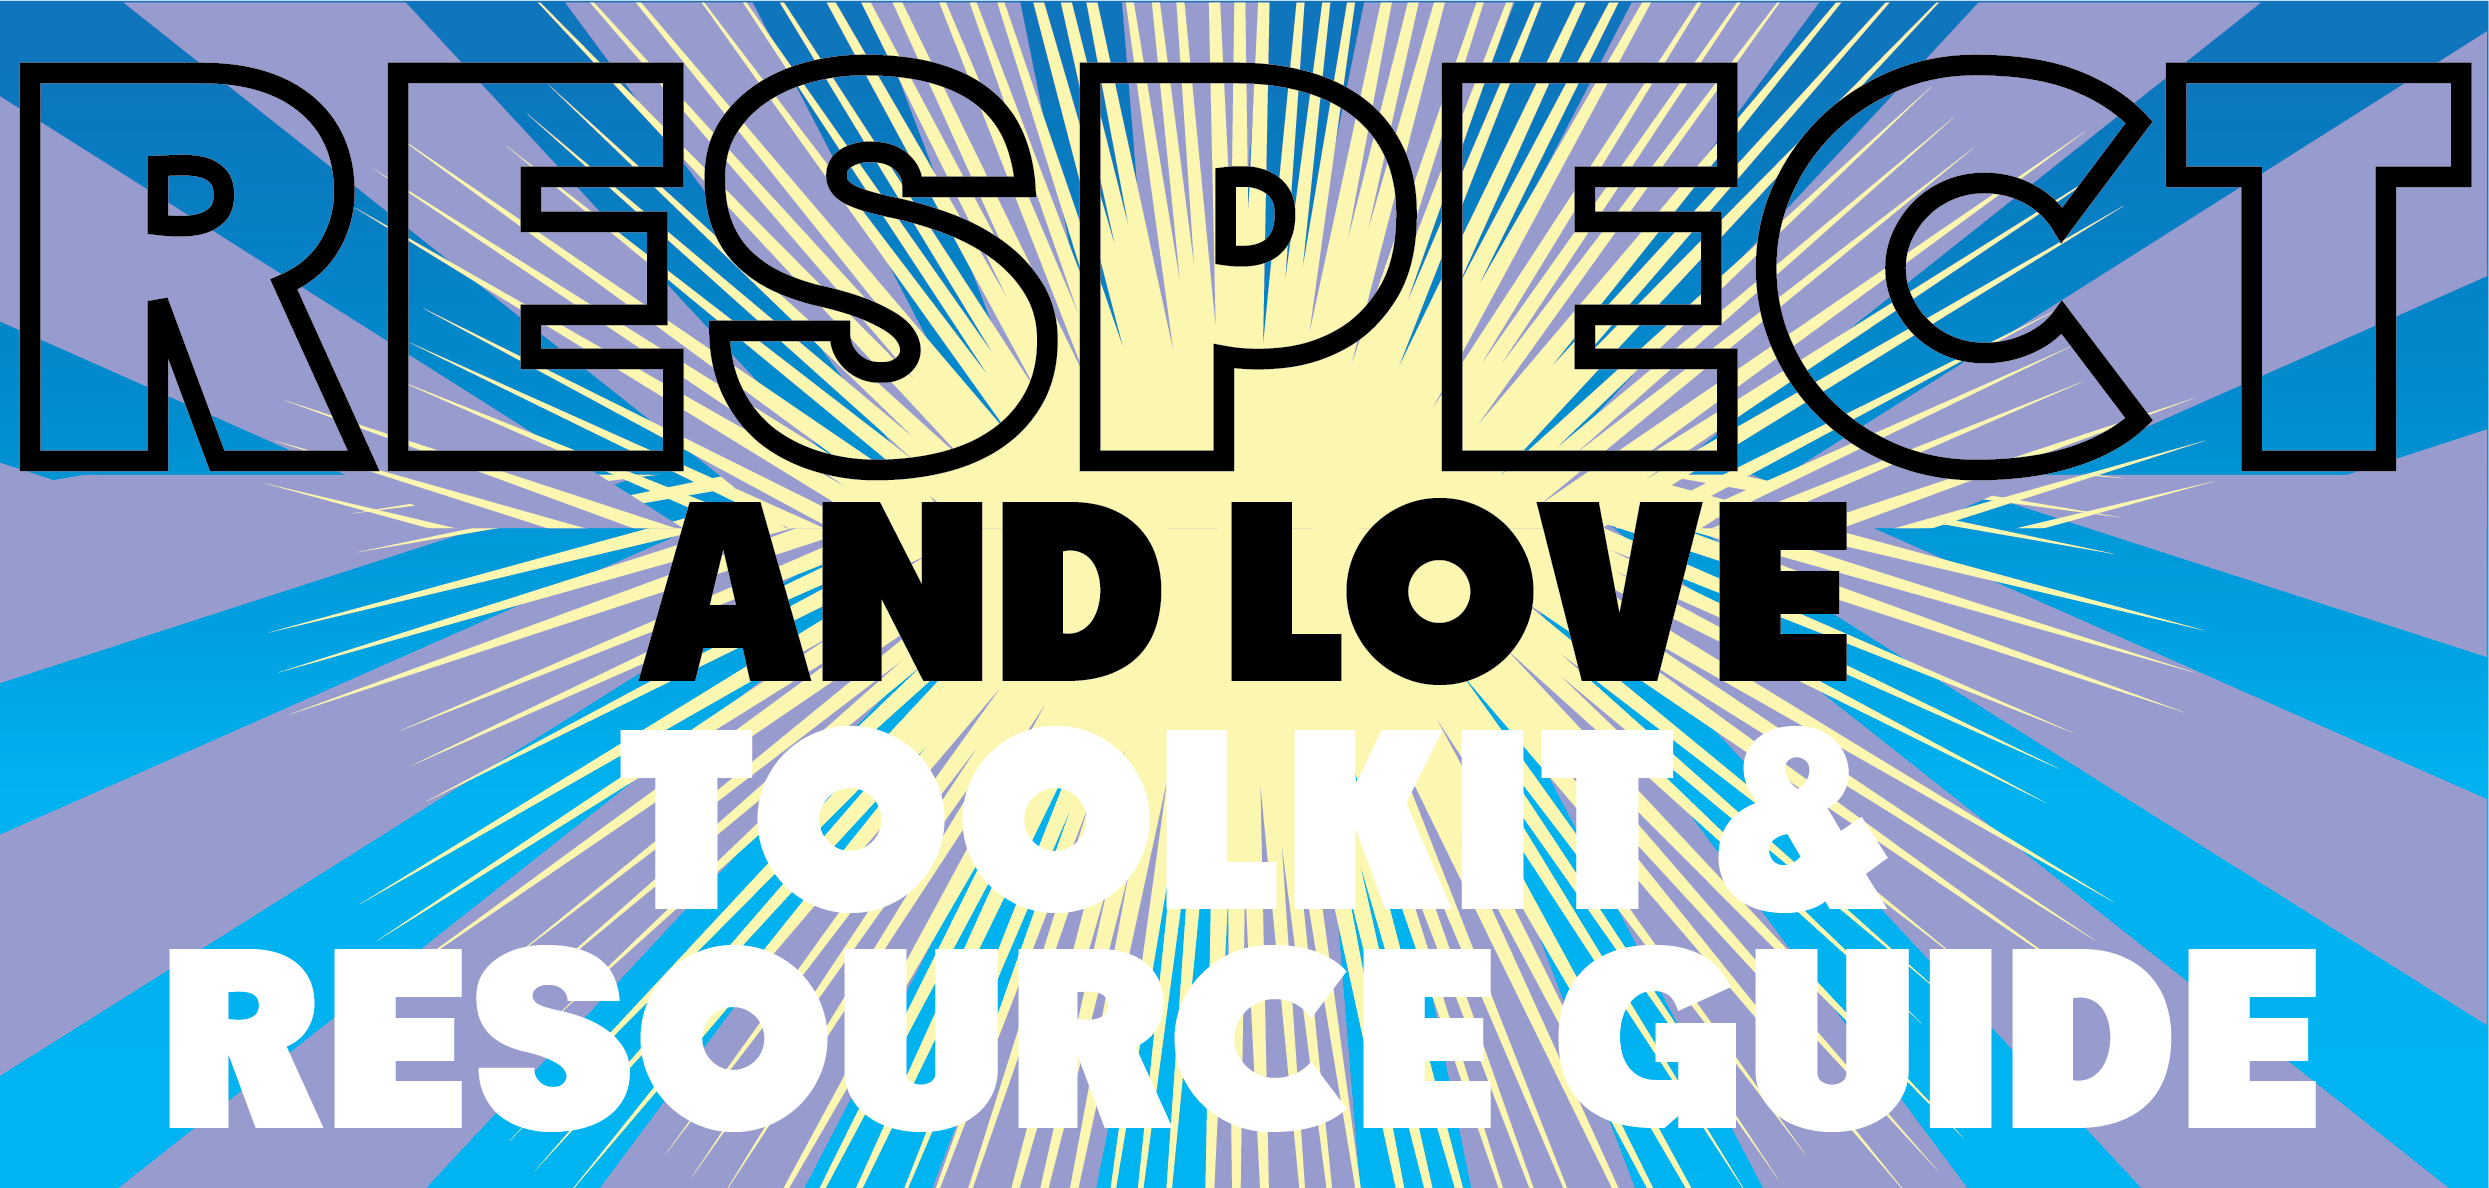 Respect and Love Toolkit header text